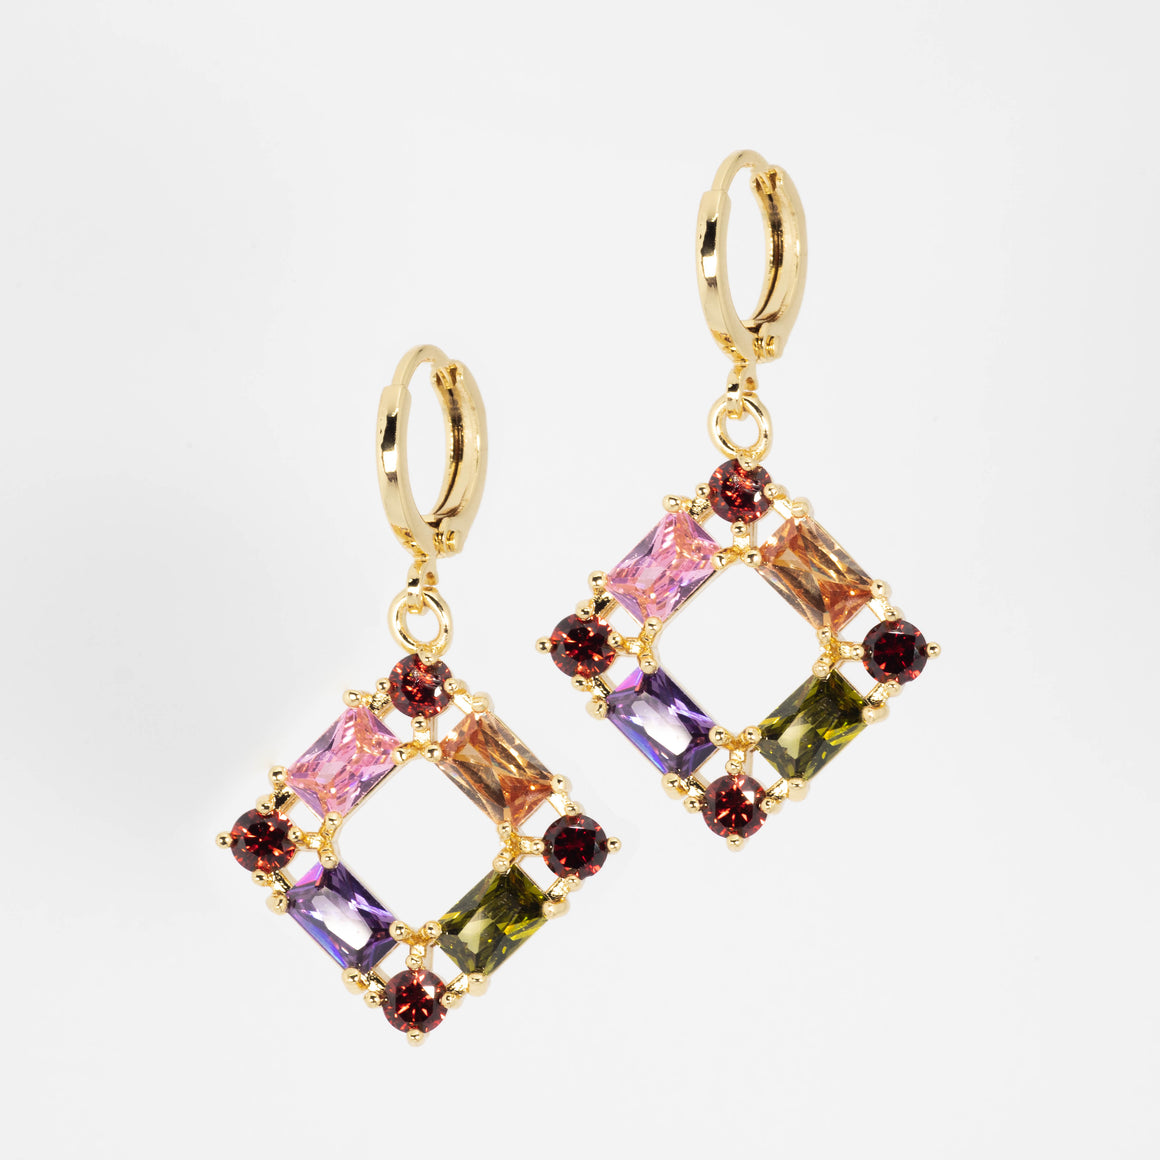 Colorful Dimond Earrings